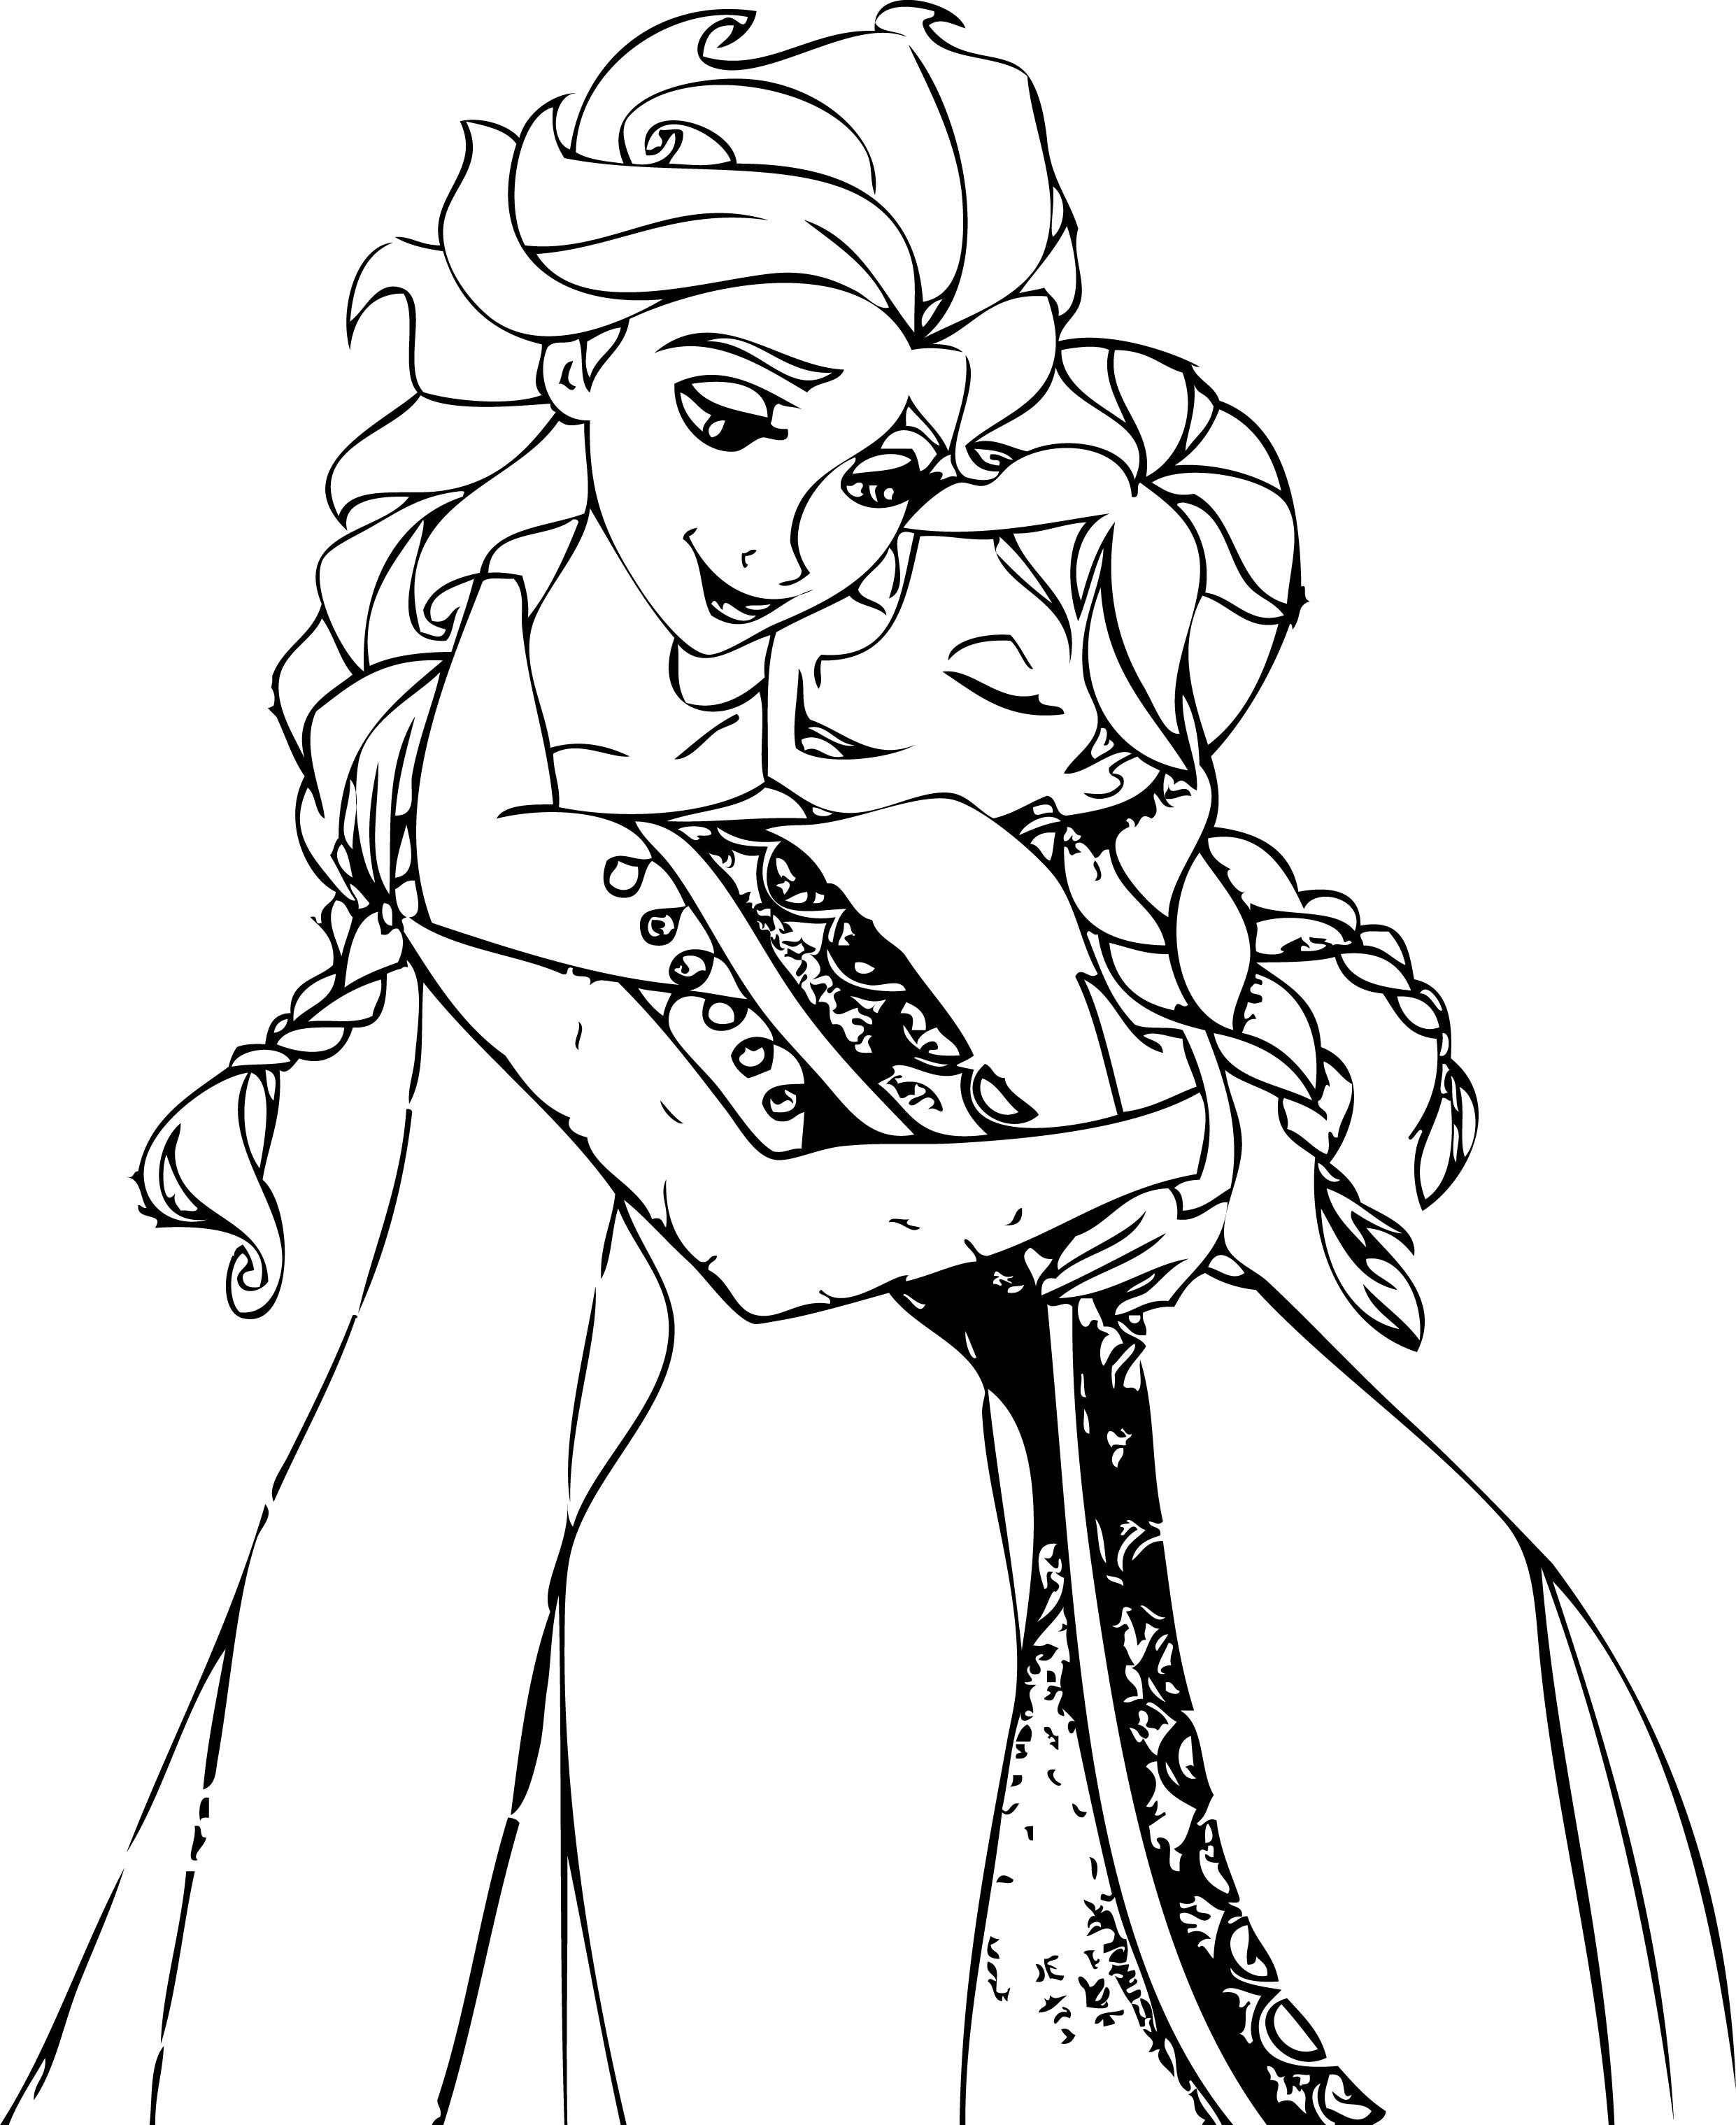 Cool Elsa And Anna Hug Coloring Page Elsa Coloring Pages Frozen